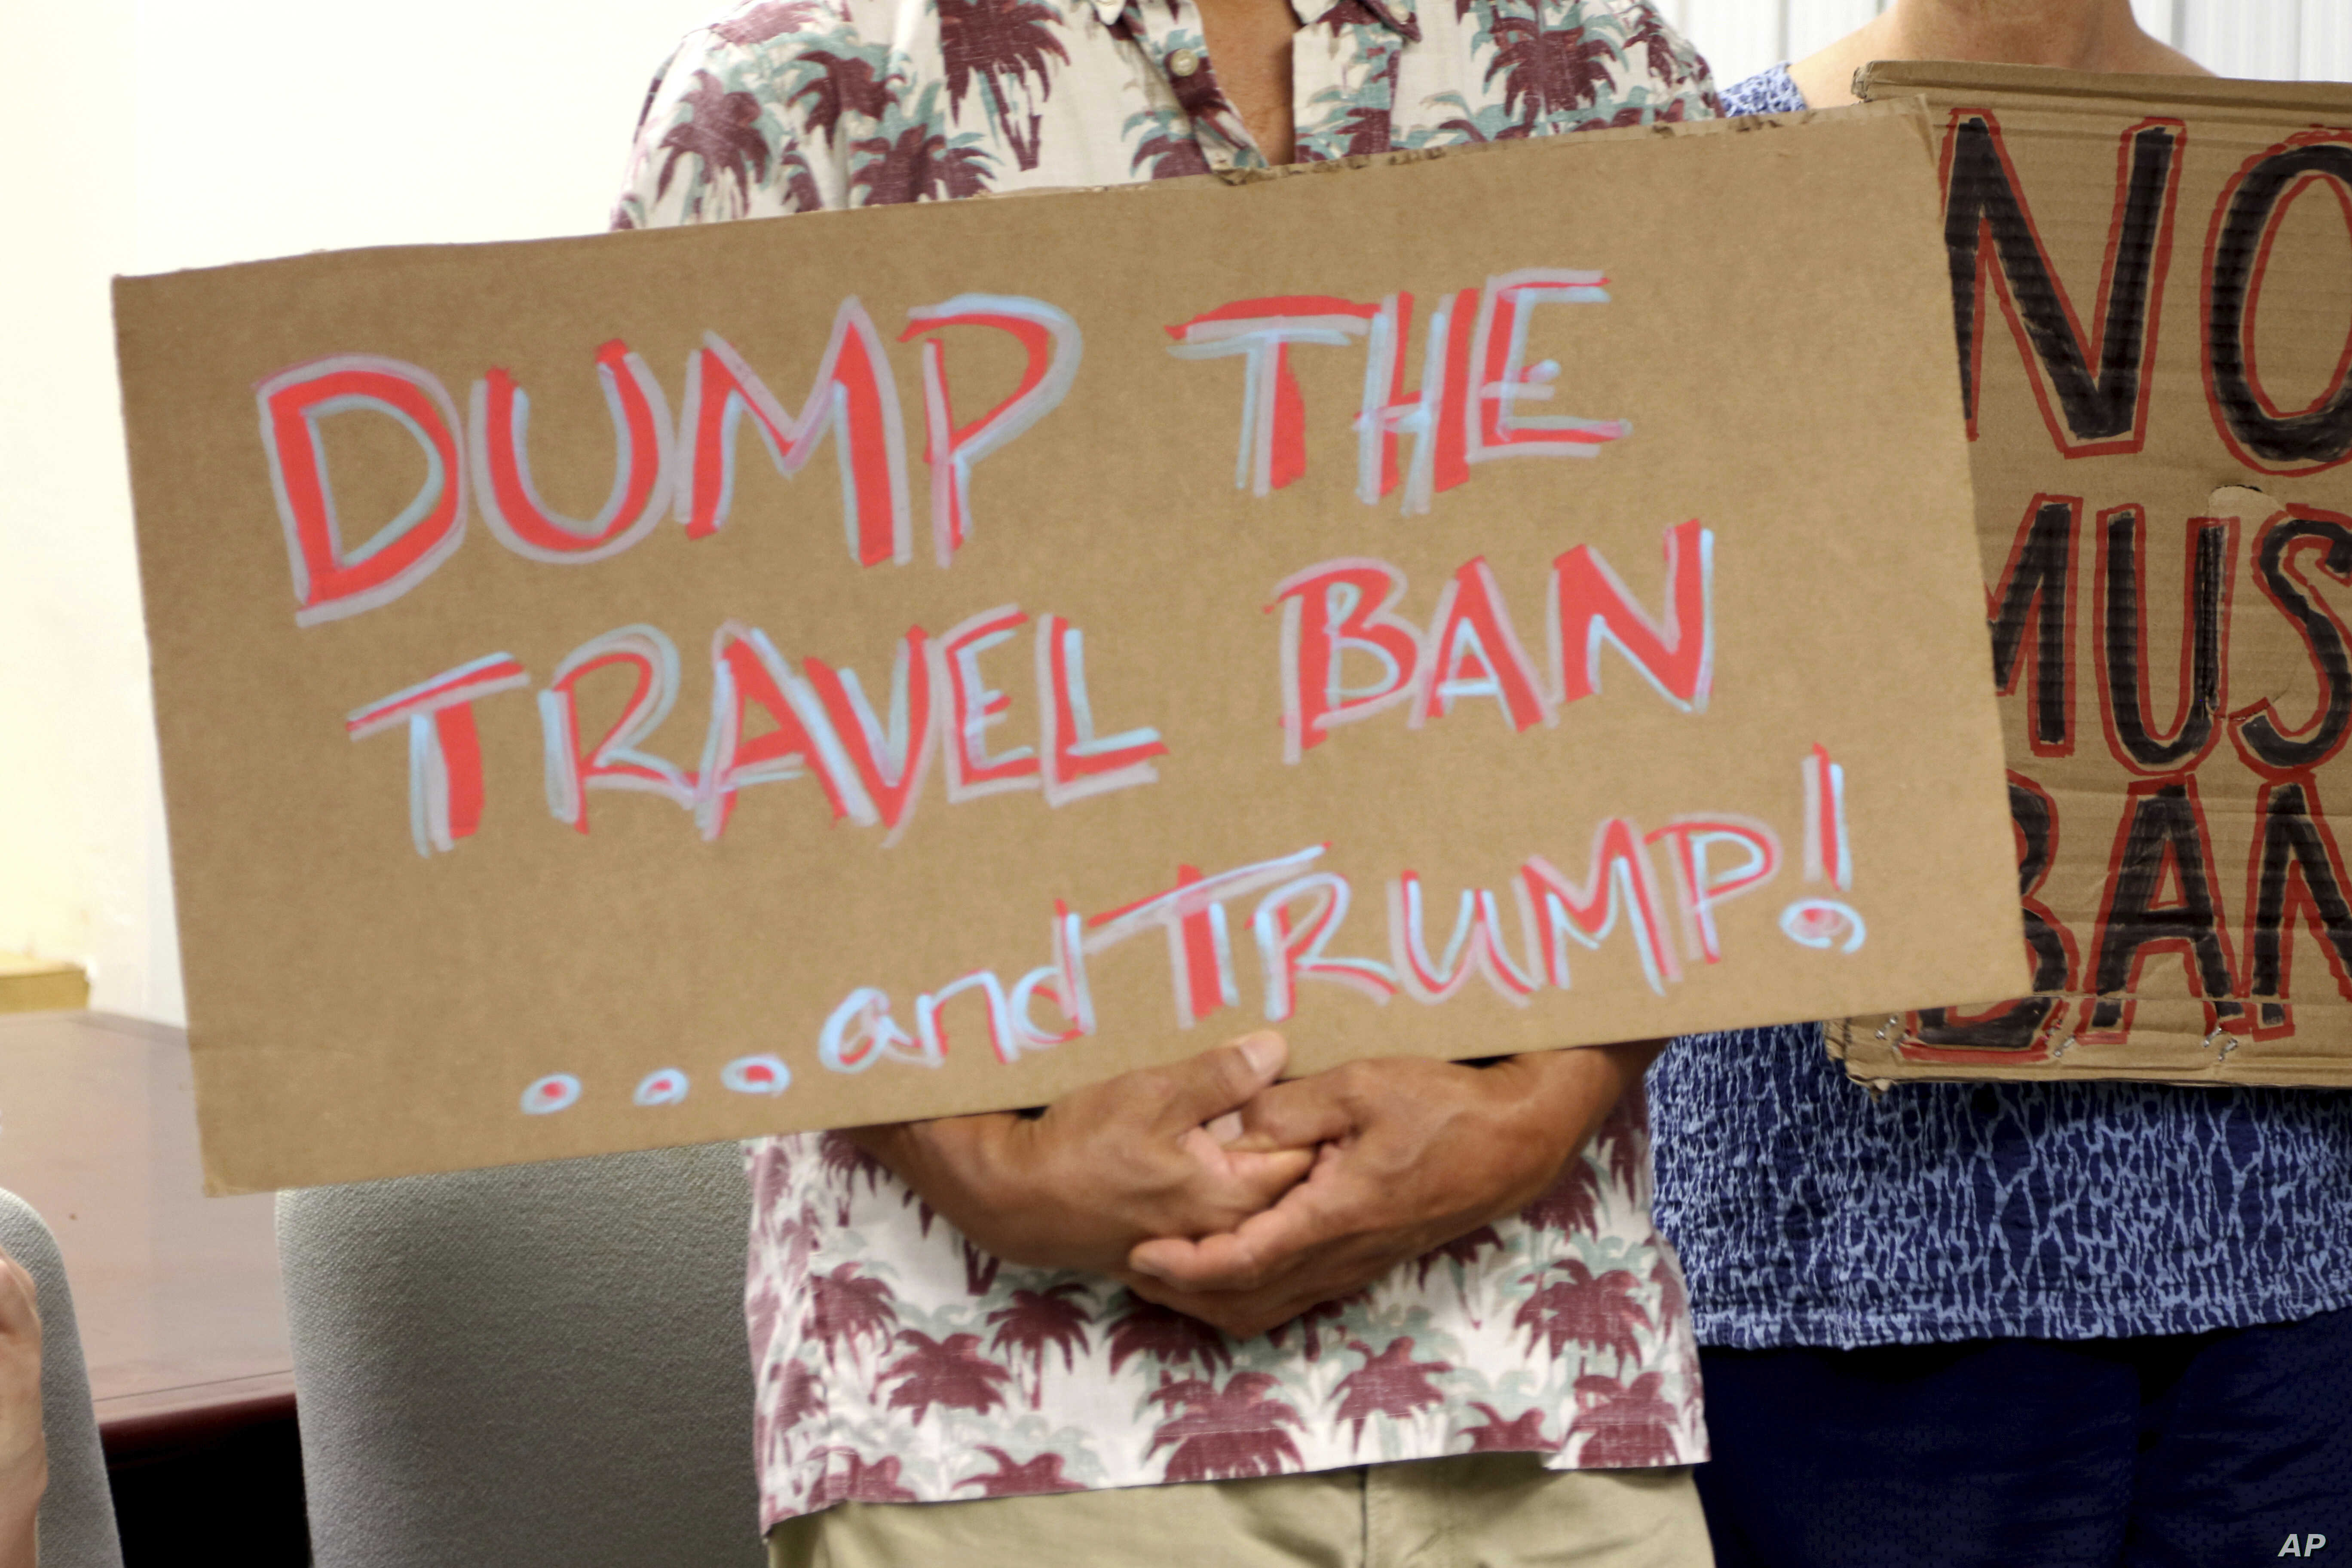 Critics of President Donald Trump's travel ban hold signs during a news conference with Hawaii Attorney General Douglas Chin, June 30, 2017 in Honolulu.